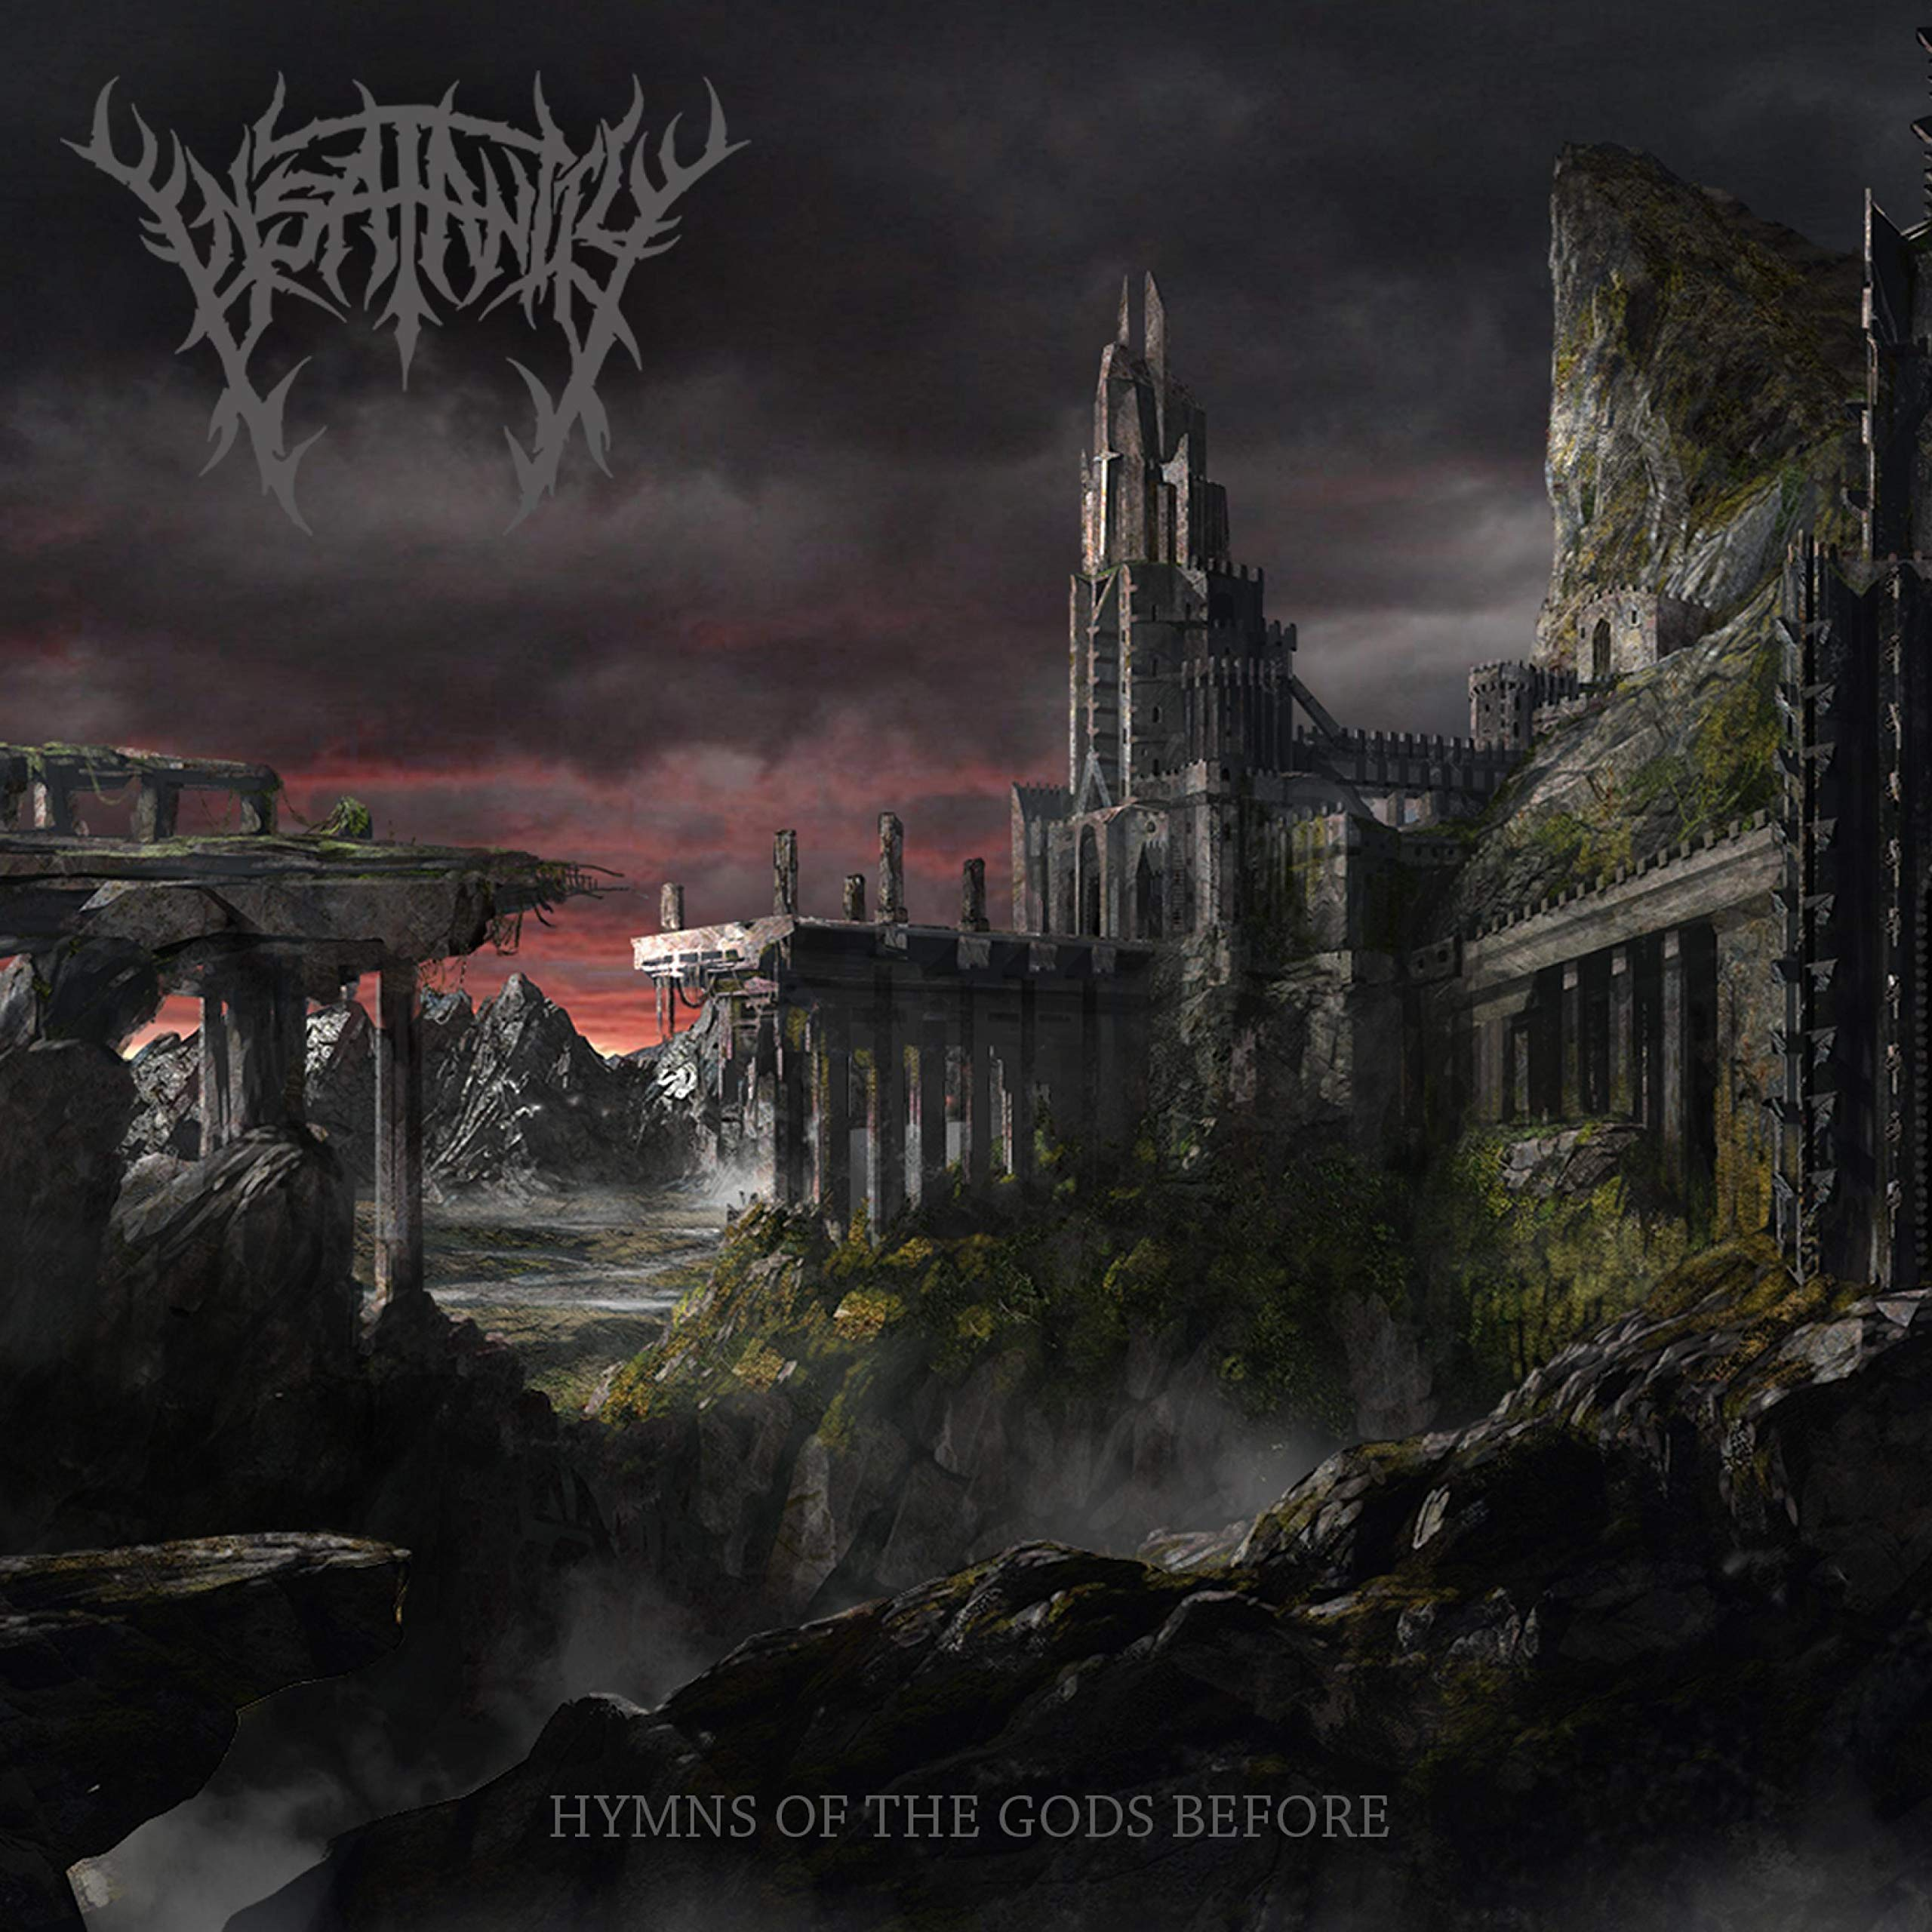 Insatanity - Hymns of the Gods Before (2020) [FLAC] Download